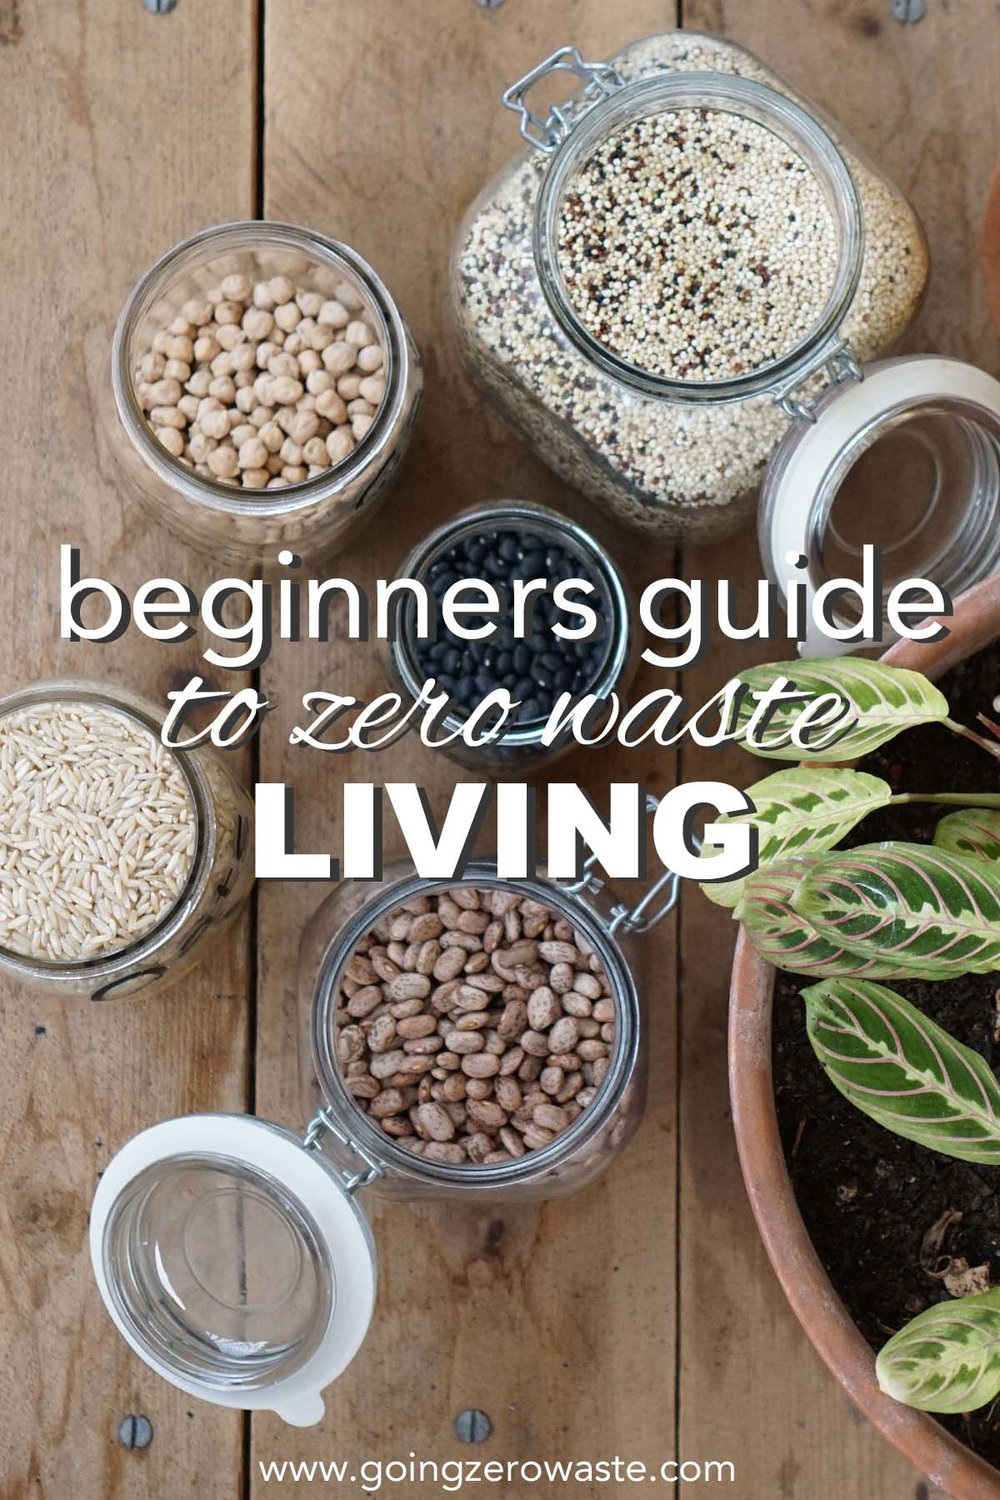 Beginners guide to zero waste living from www.goingzerowaste.com  #zerowaste #ecofriendly #gogreen #simpleliving